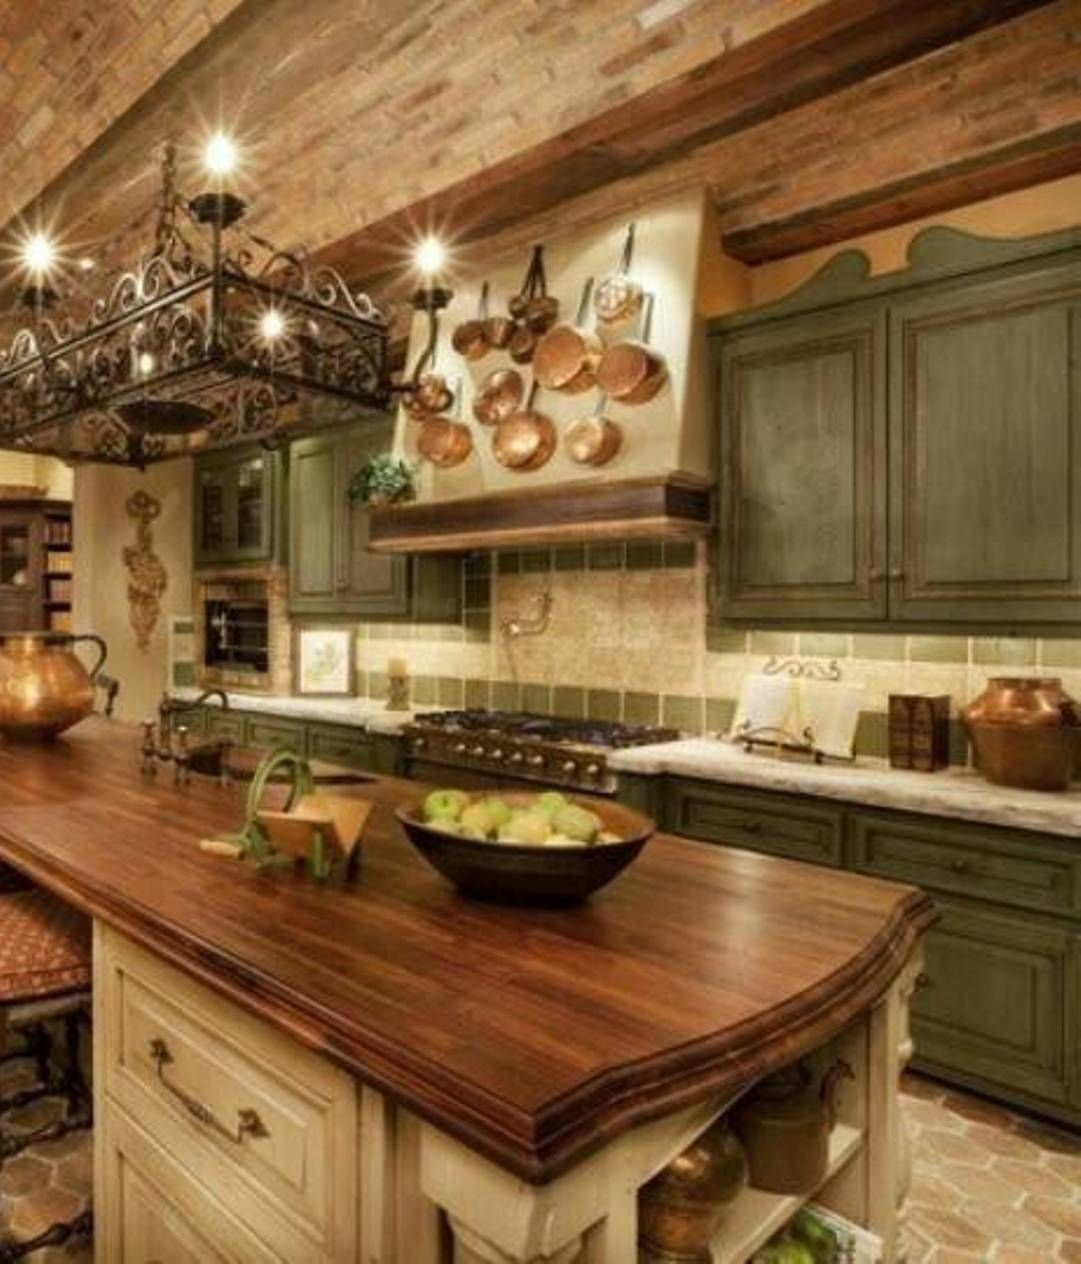 Country Style Kitchens 2013 Decorating Ideas: Stunning Tuscan Kitchen : Tuscan Kitchen Decorating Ideas